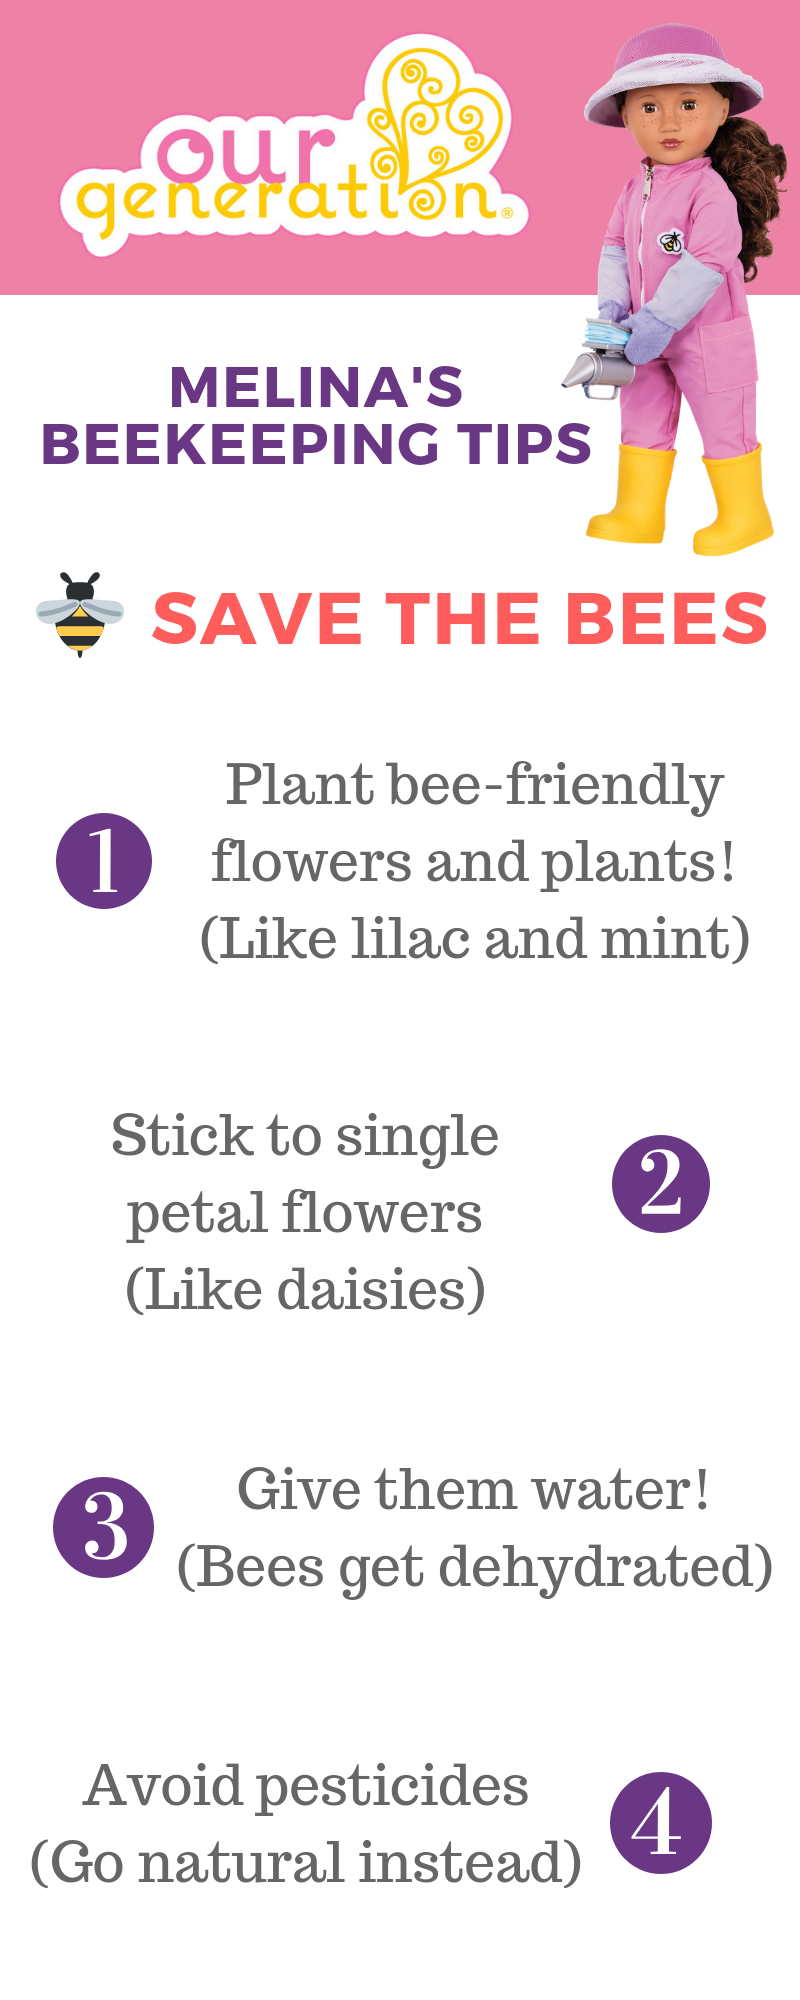 Save the Bees with Melina!